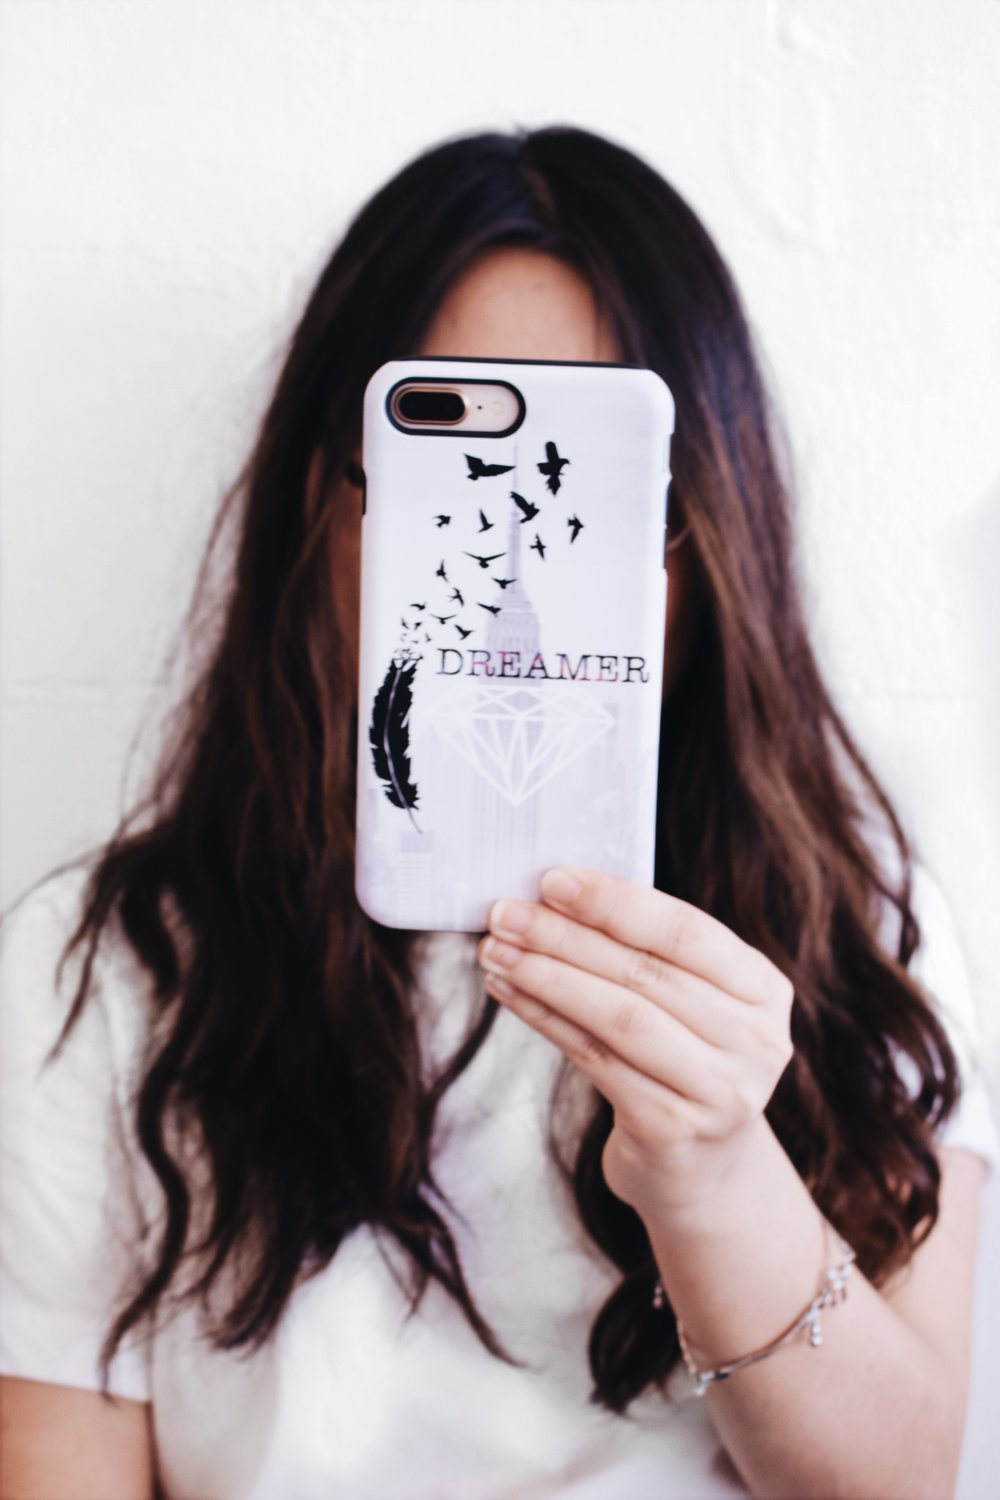 I actually designed this case. The last one was kind of inspired by the calligraphic paintings in old Chinese texts. I love to use my personal accessories as a way to express myself. This case is about how much I love birds, how in person I hope to be as tough as a diamond (I am also an ADPi) and my love for the city (remember that anything is possible!!)